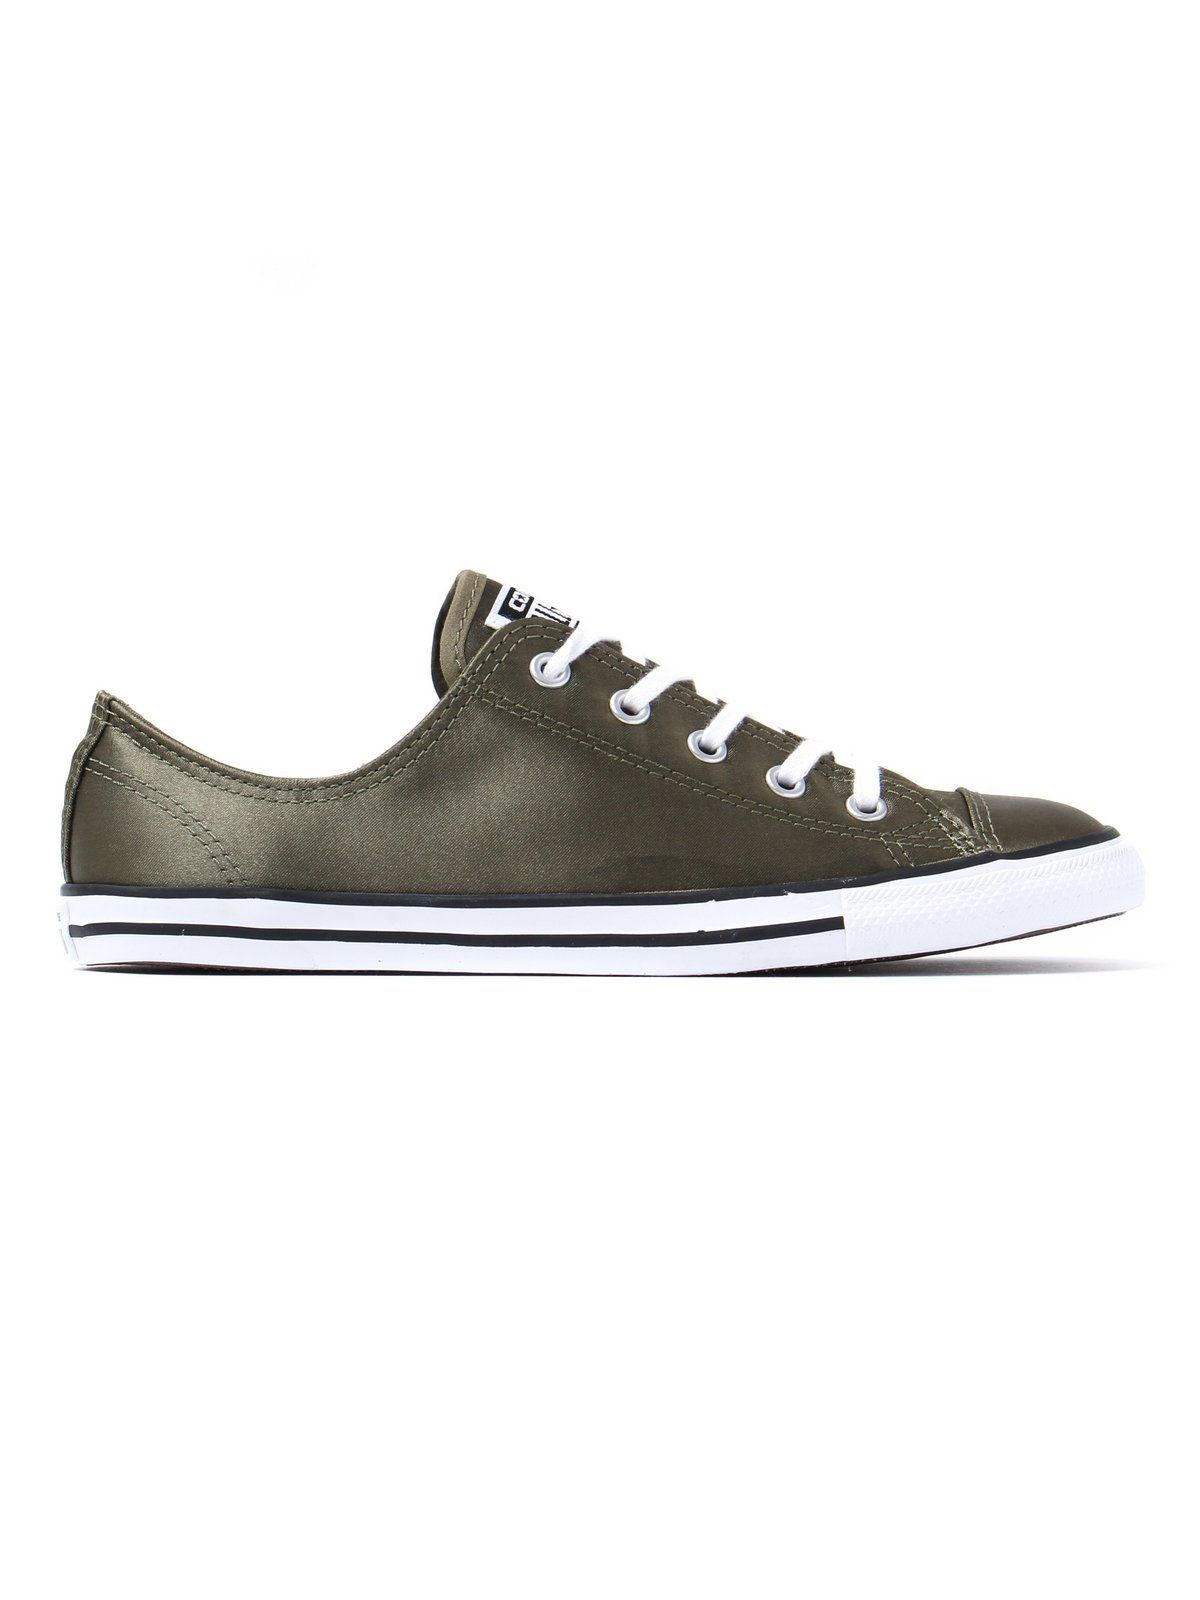 a9731846bb7bf8 Converse Women s All Star Dainty OX Canvas Trainers - Olive ...